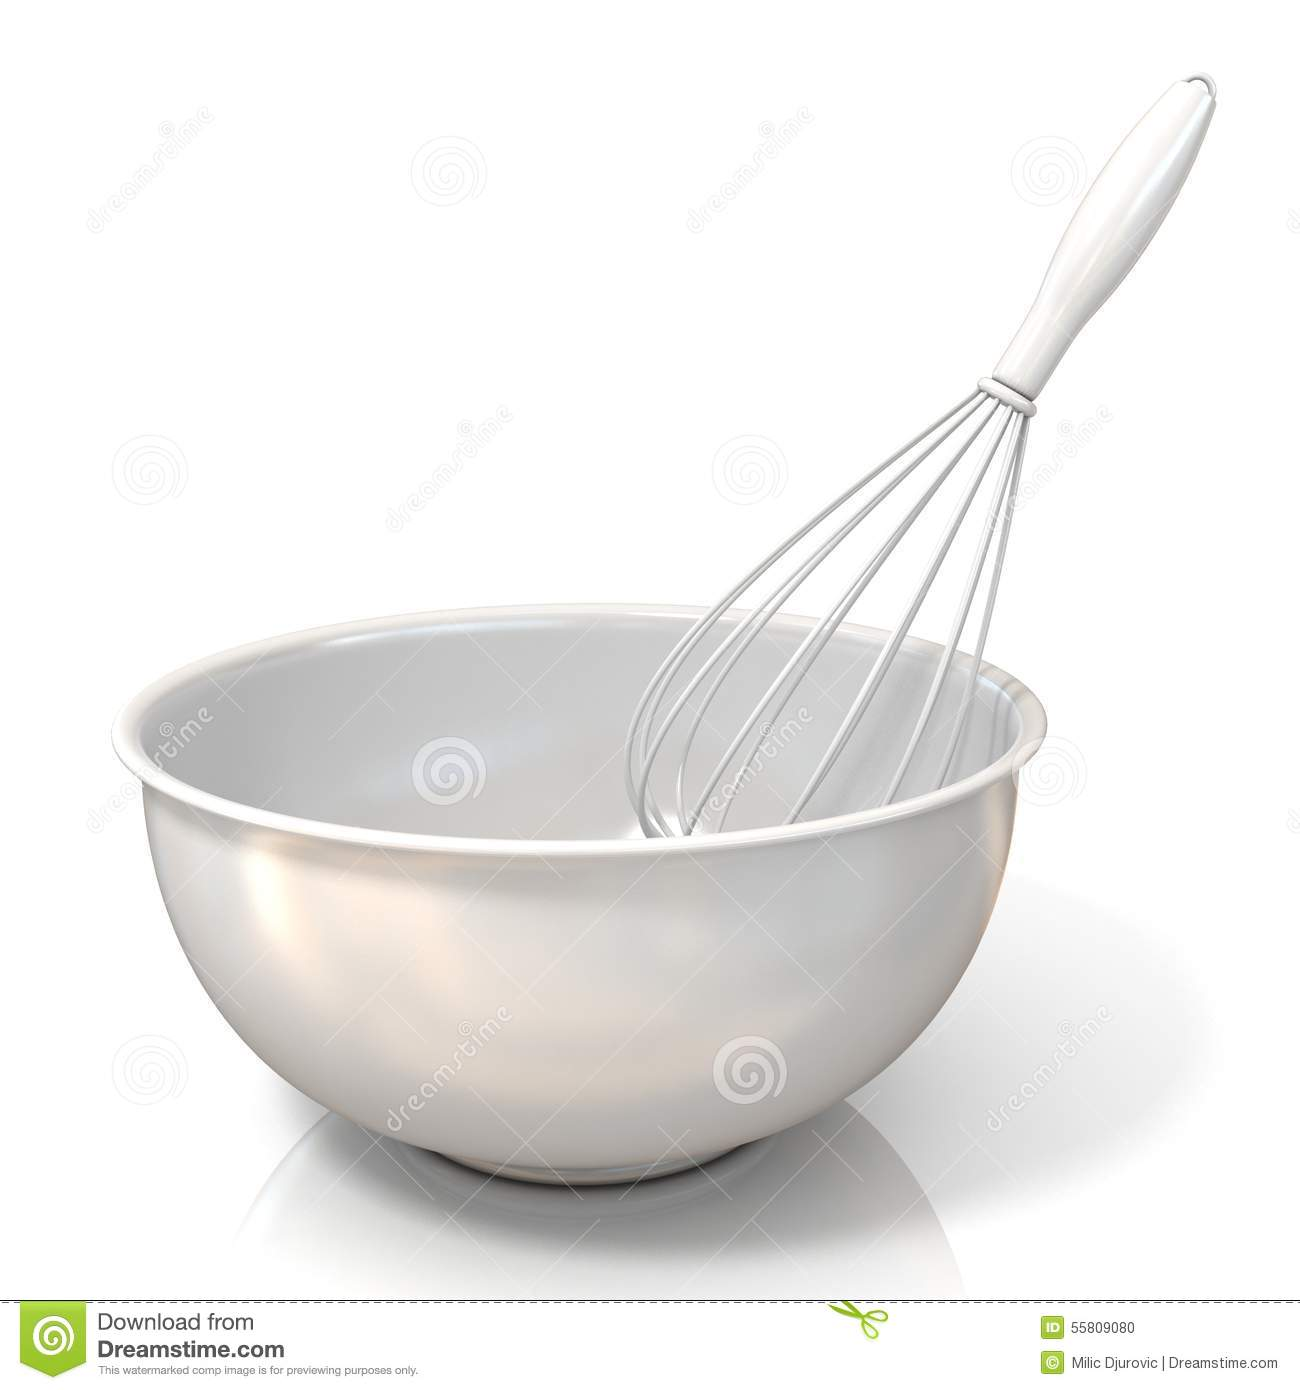 Bowl With A Wire Whisk Stock Illustration - Image: 55809080